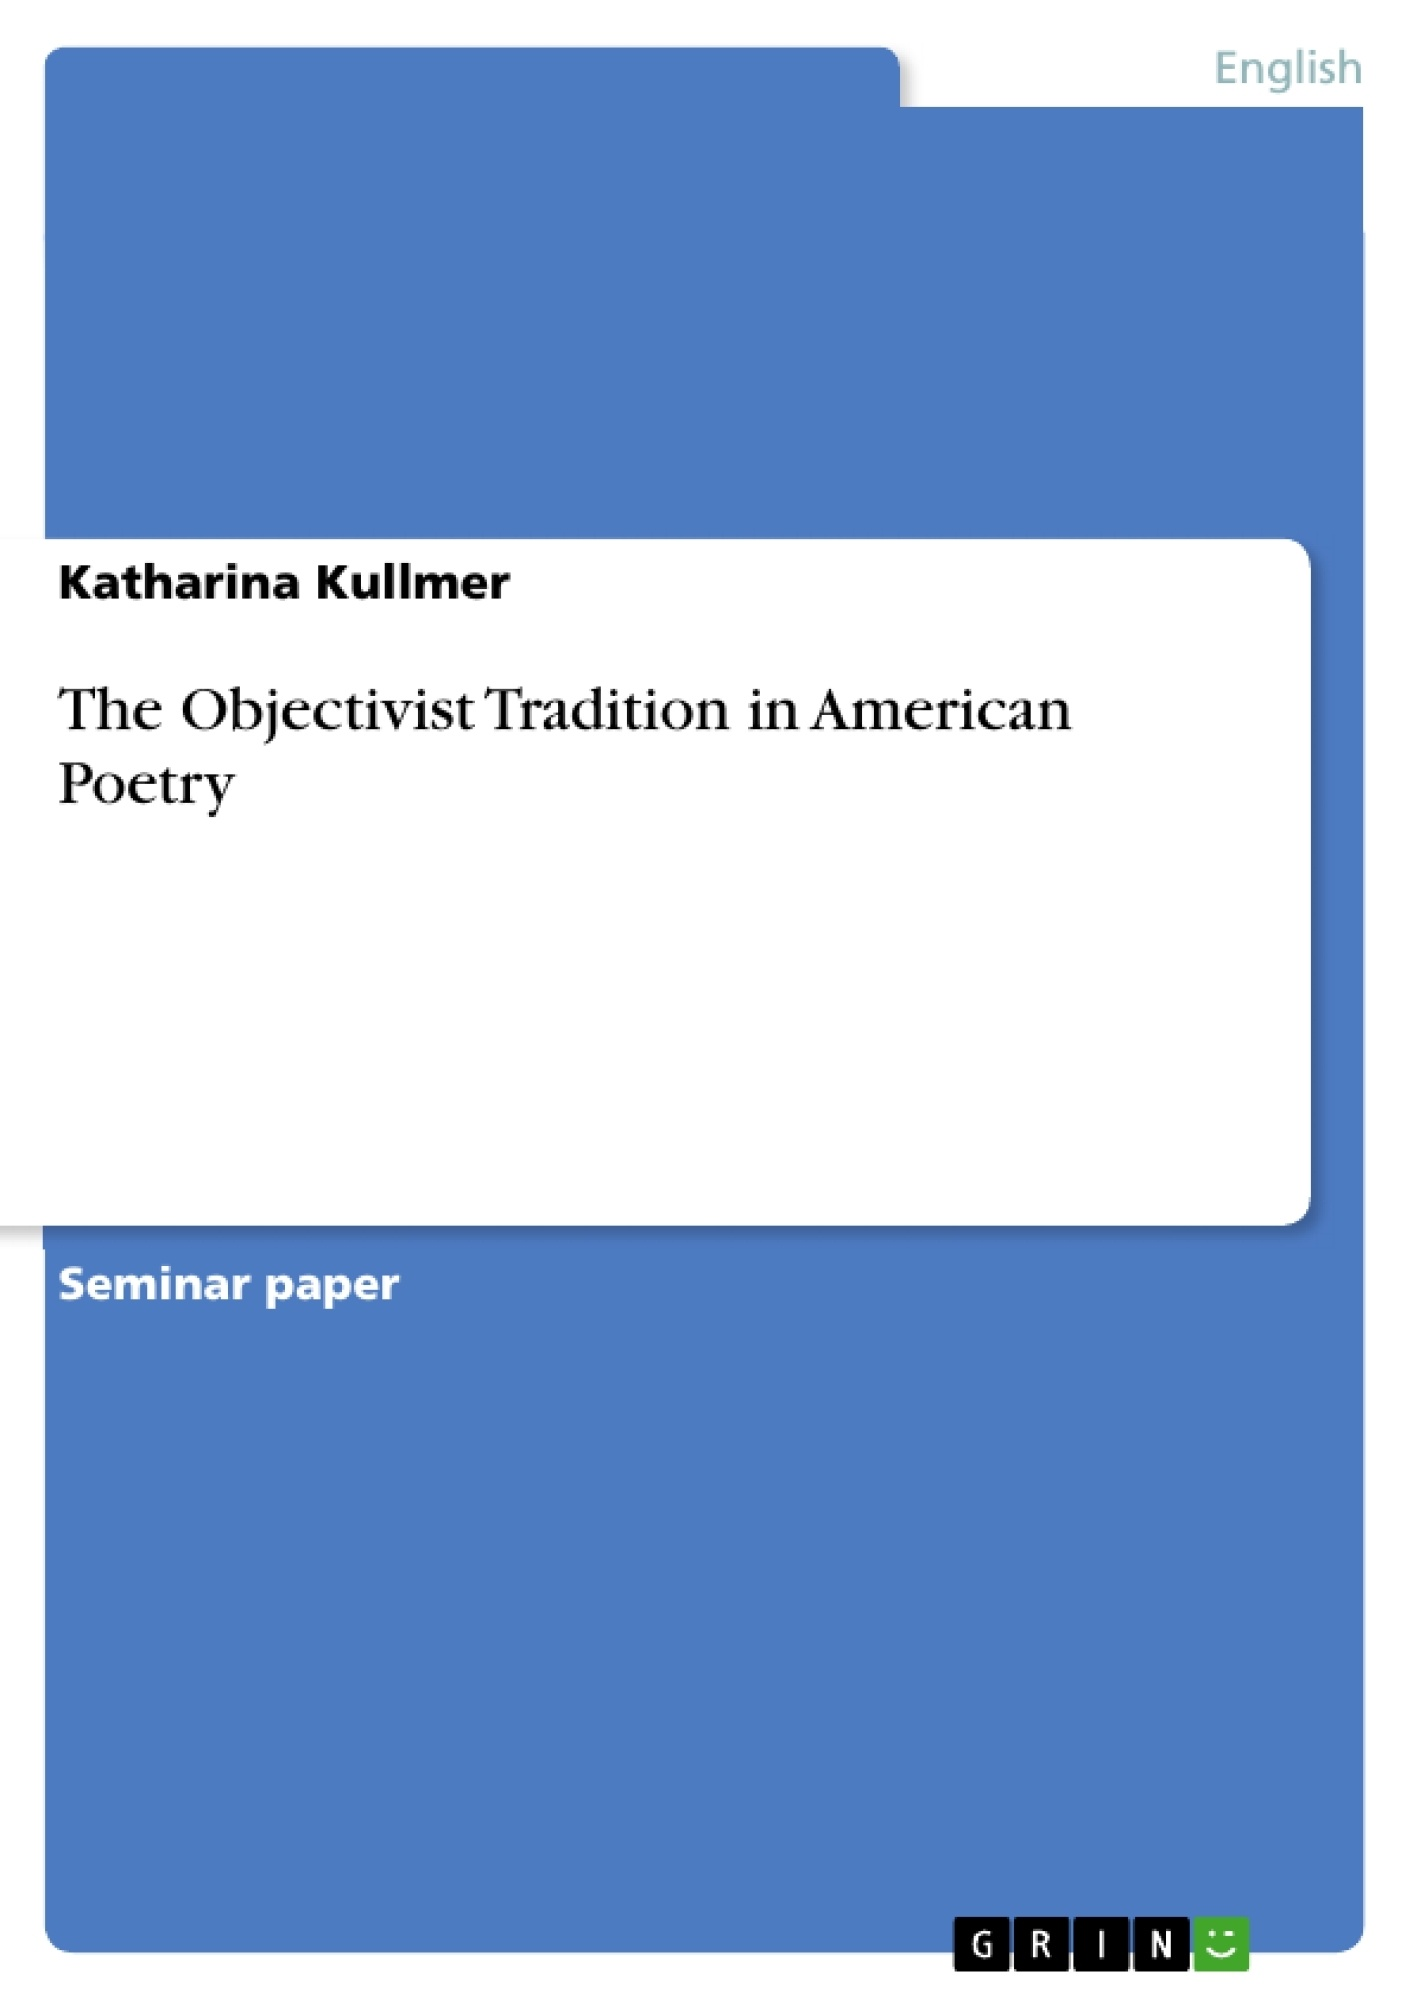 Title: The Objectivist Tradition in American Poetry